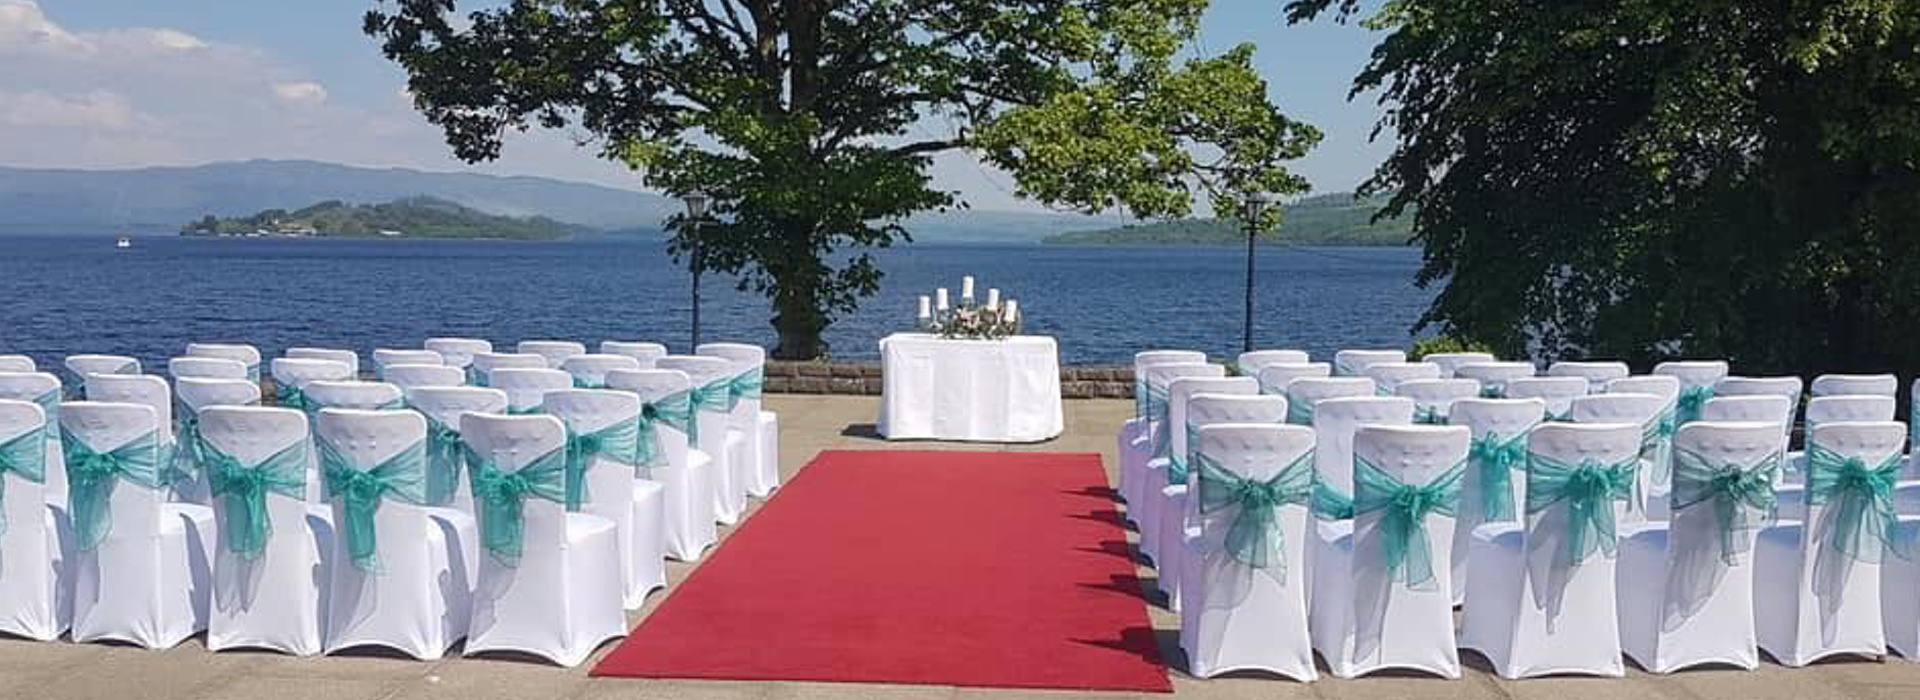 Chair Covers and Venue Decoration outside at The Cruin in Loch Lomond